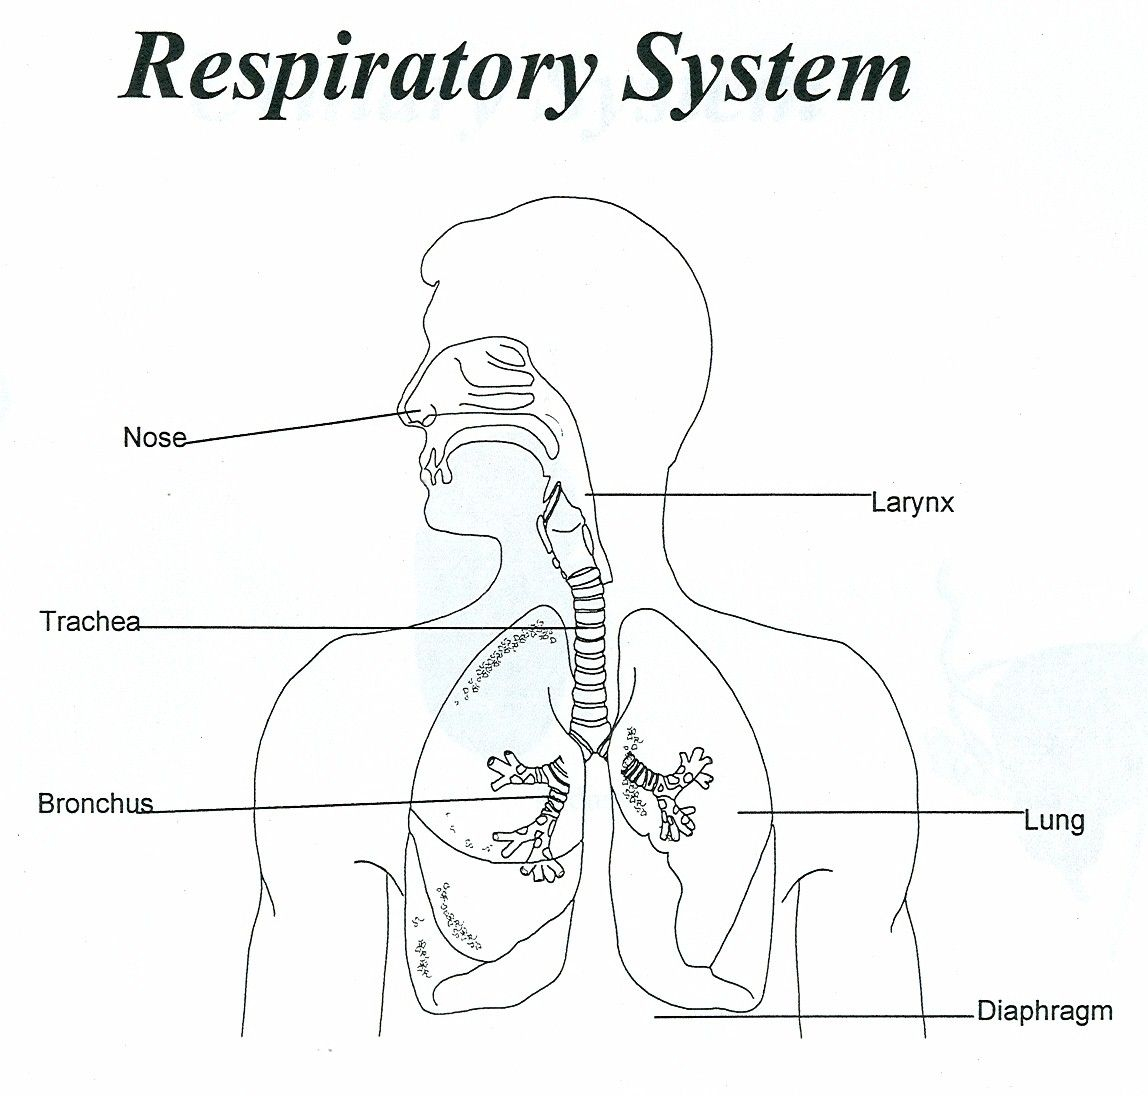 Respiratory System Diagram Respiratory System Unlabeled Human Anatomy Diagram Coloring Home